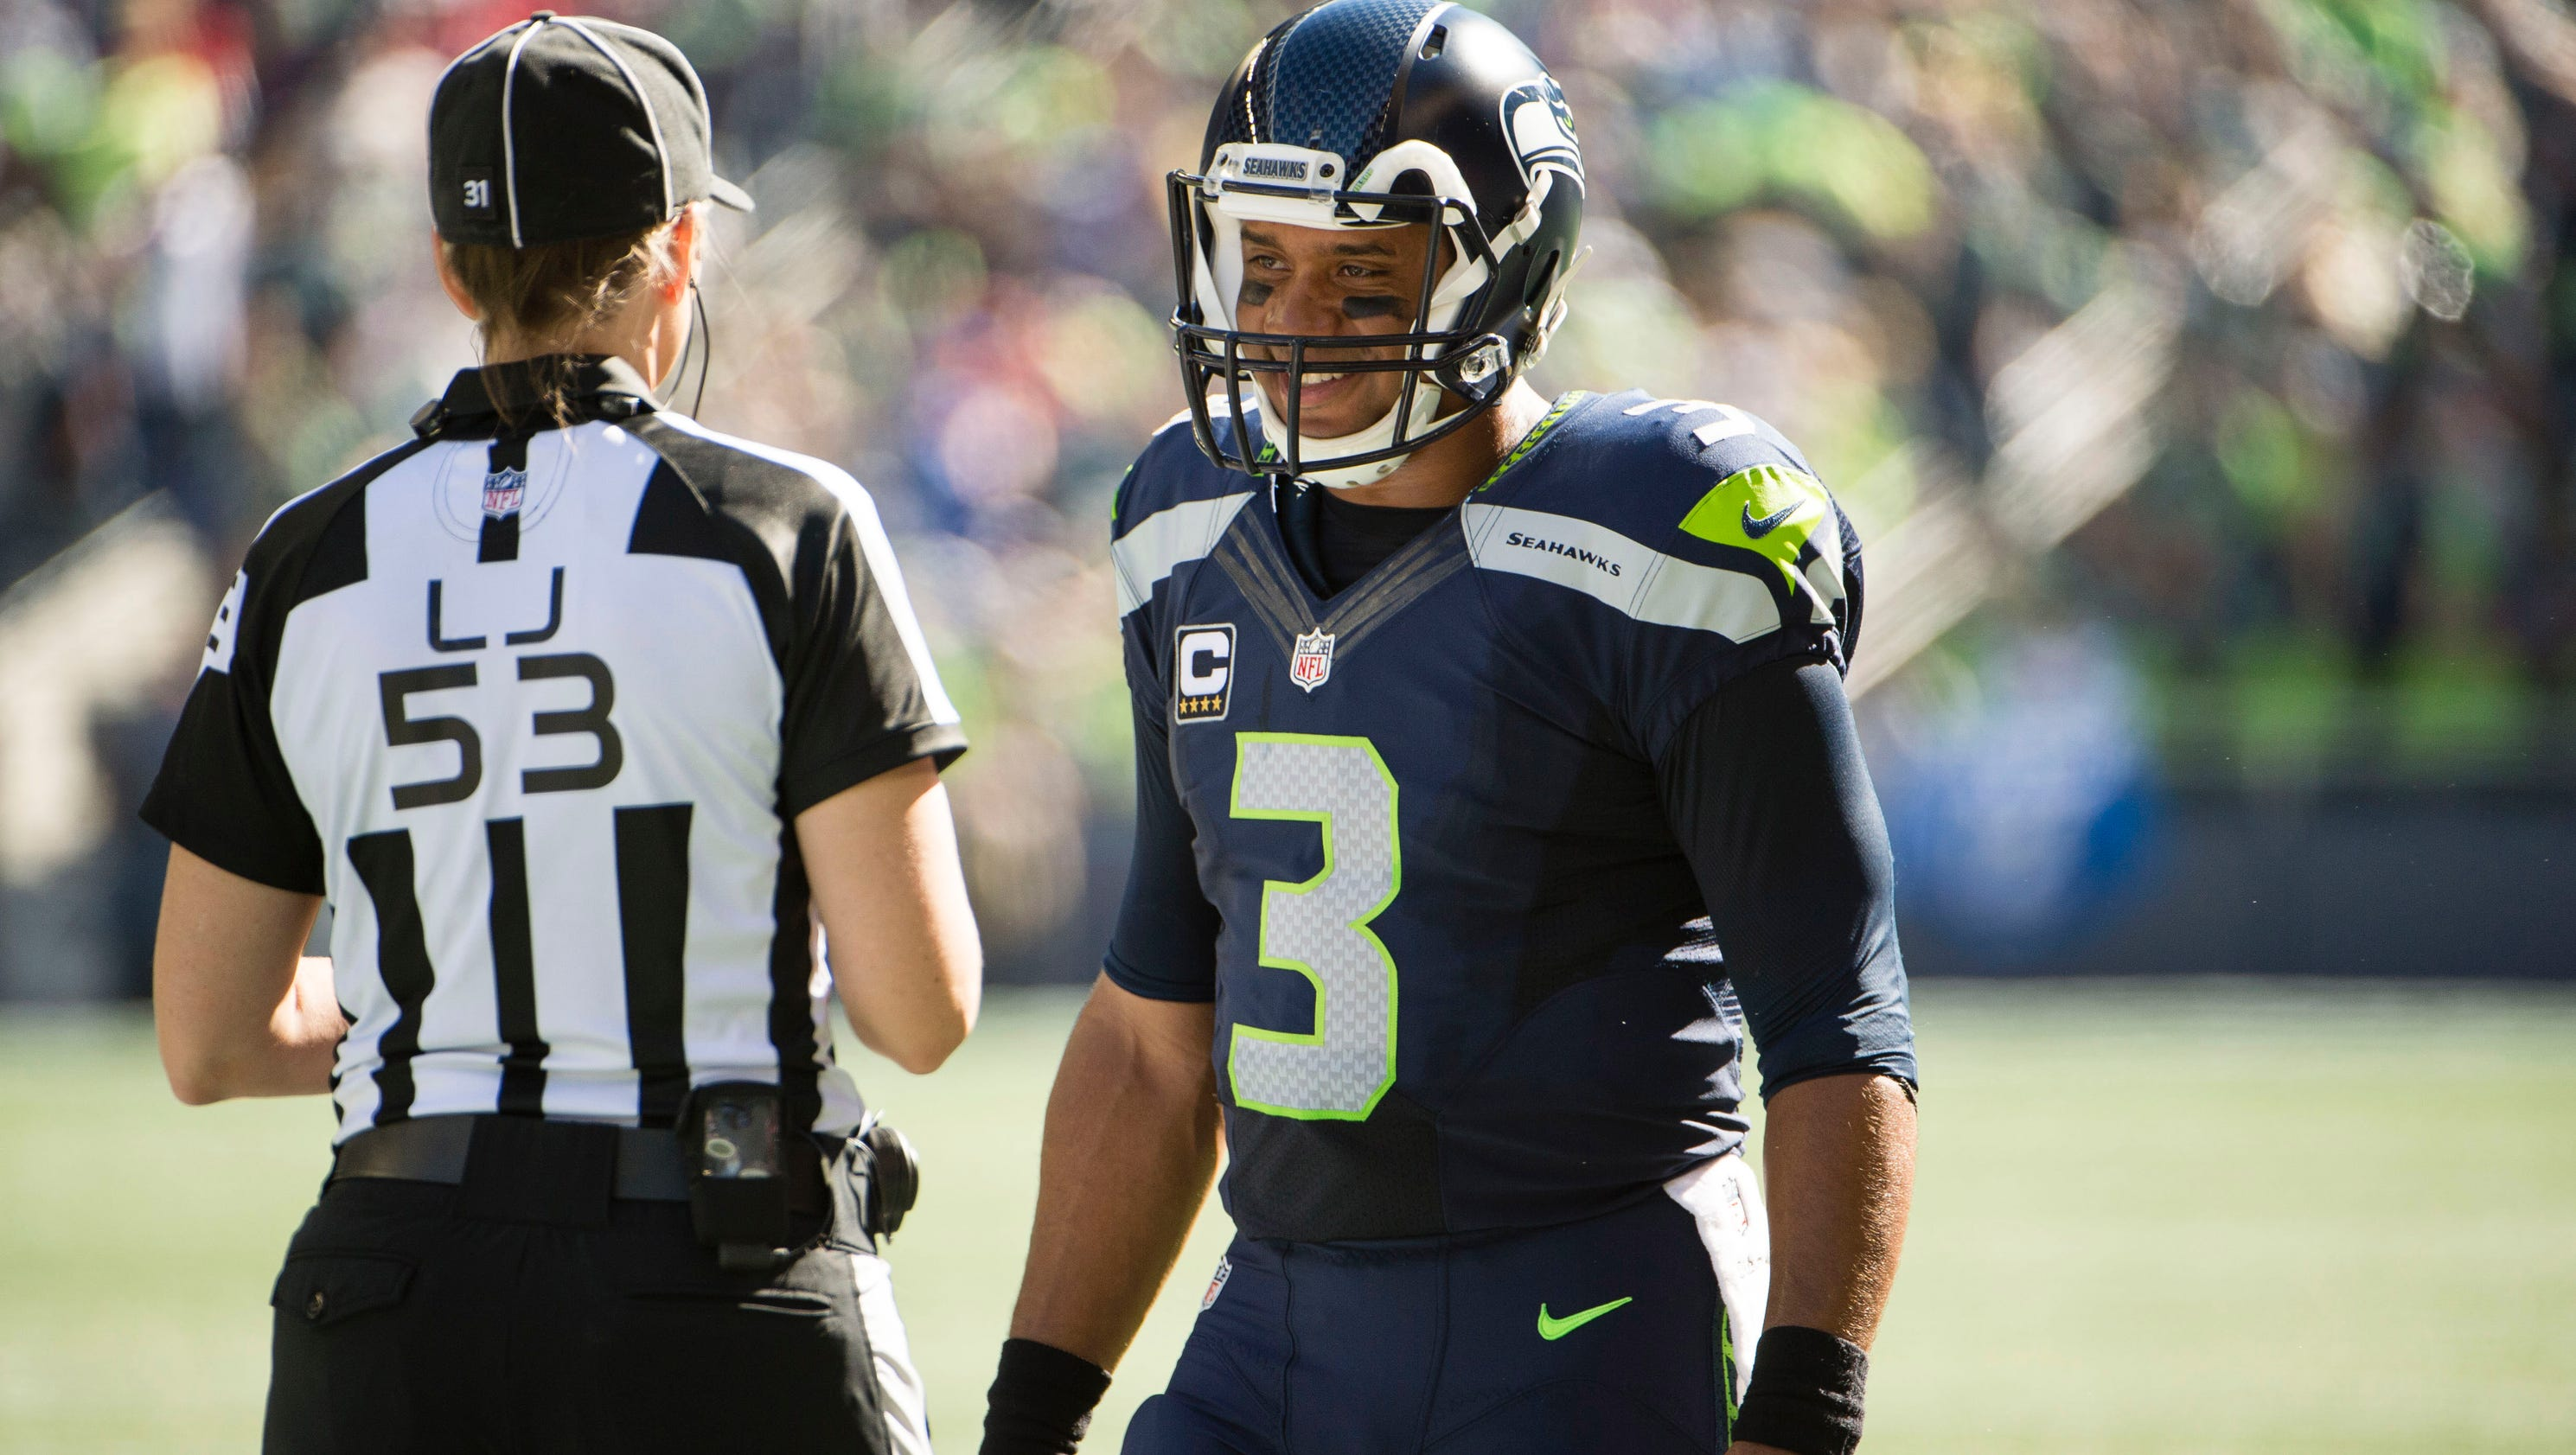 25 30 Seattle: Seahawks QB Russell Wilson To Undergo MRI After Knee Injury